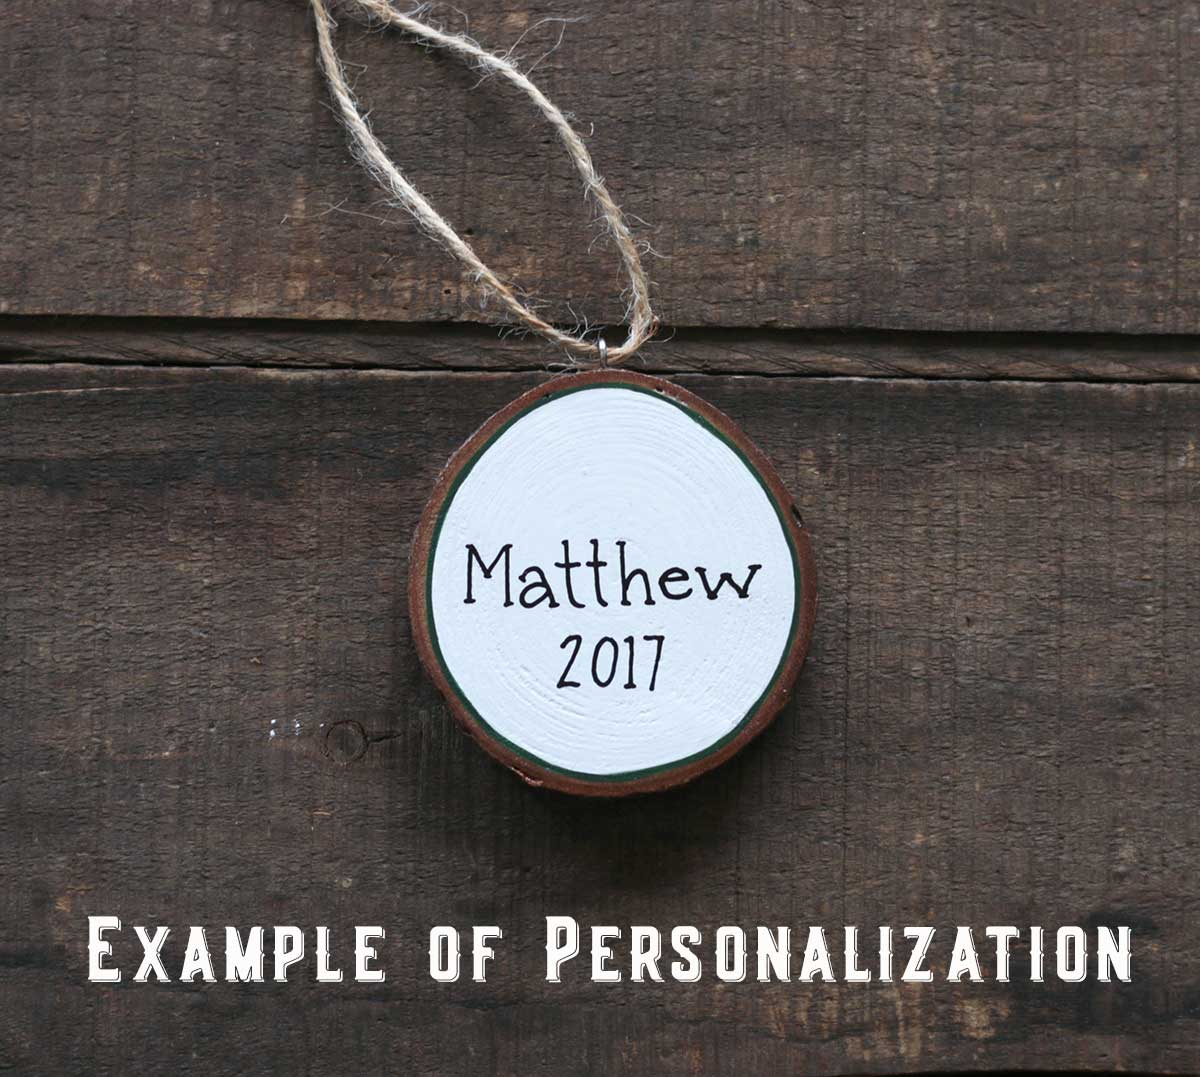 Example of Personalization